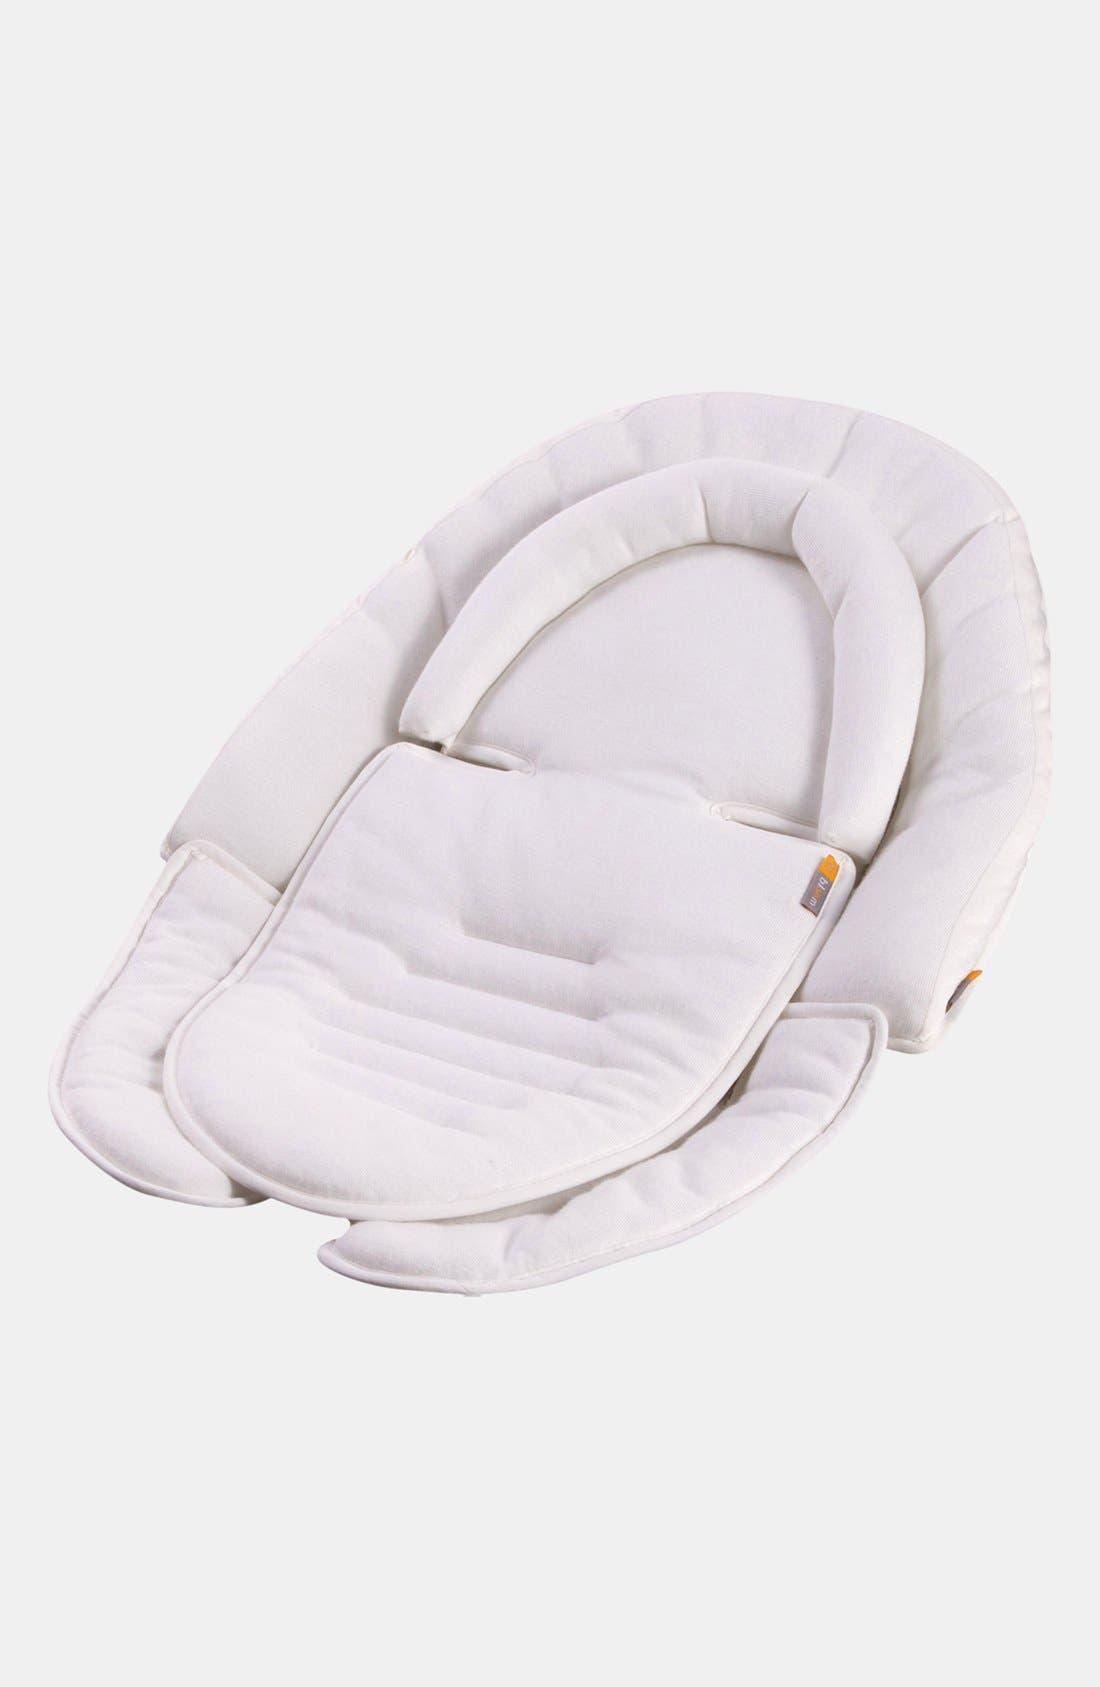 Universal Snug for Strollers, Car Seats & Highchairs,                         Main,                         color, Coconut White